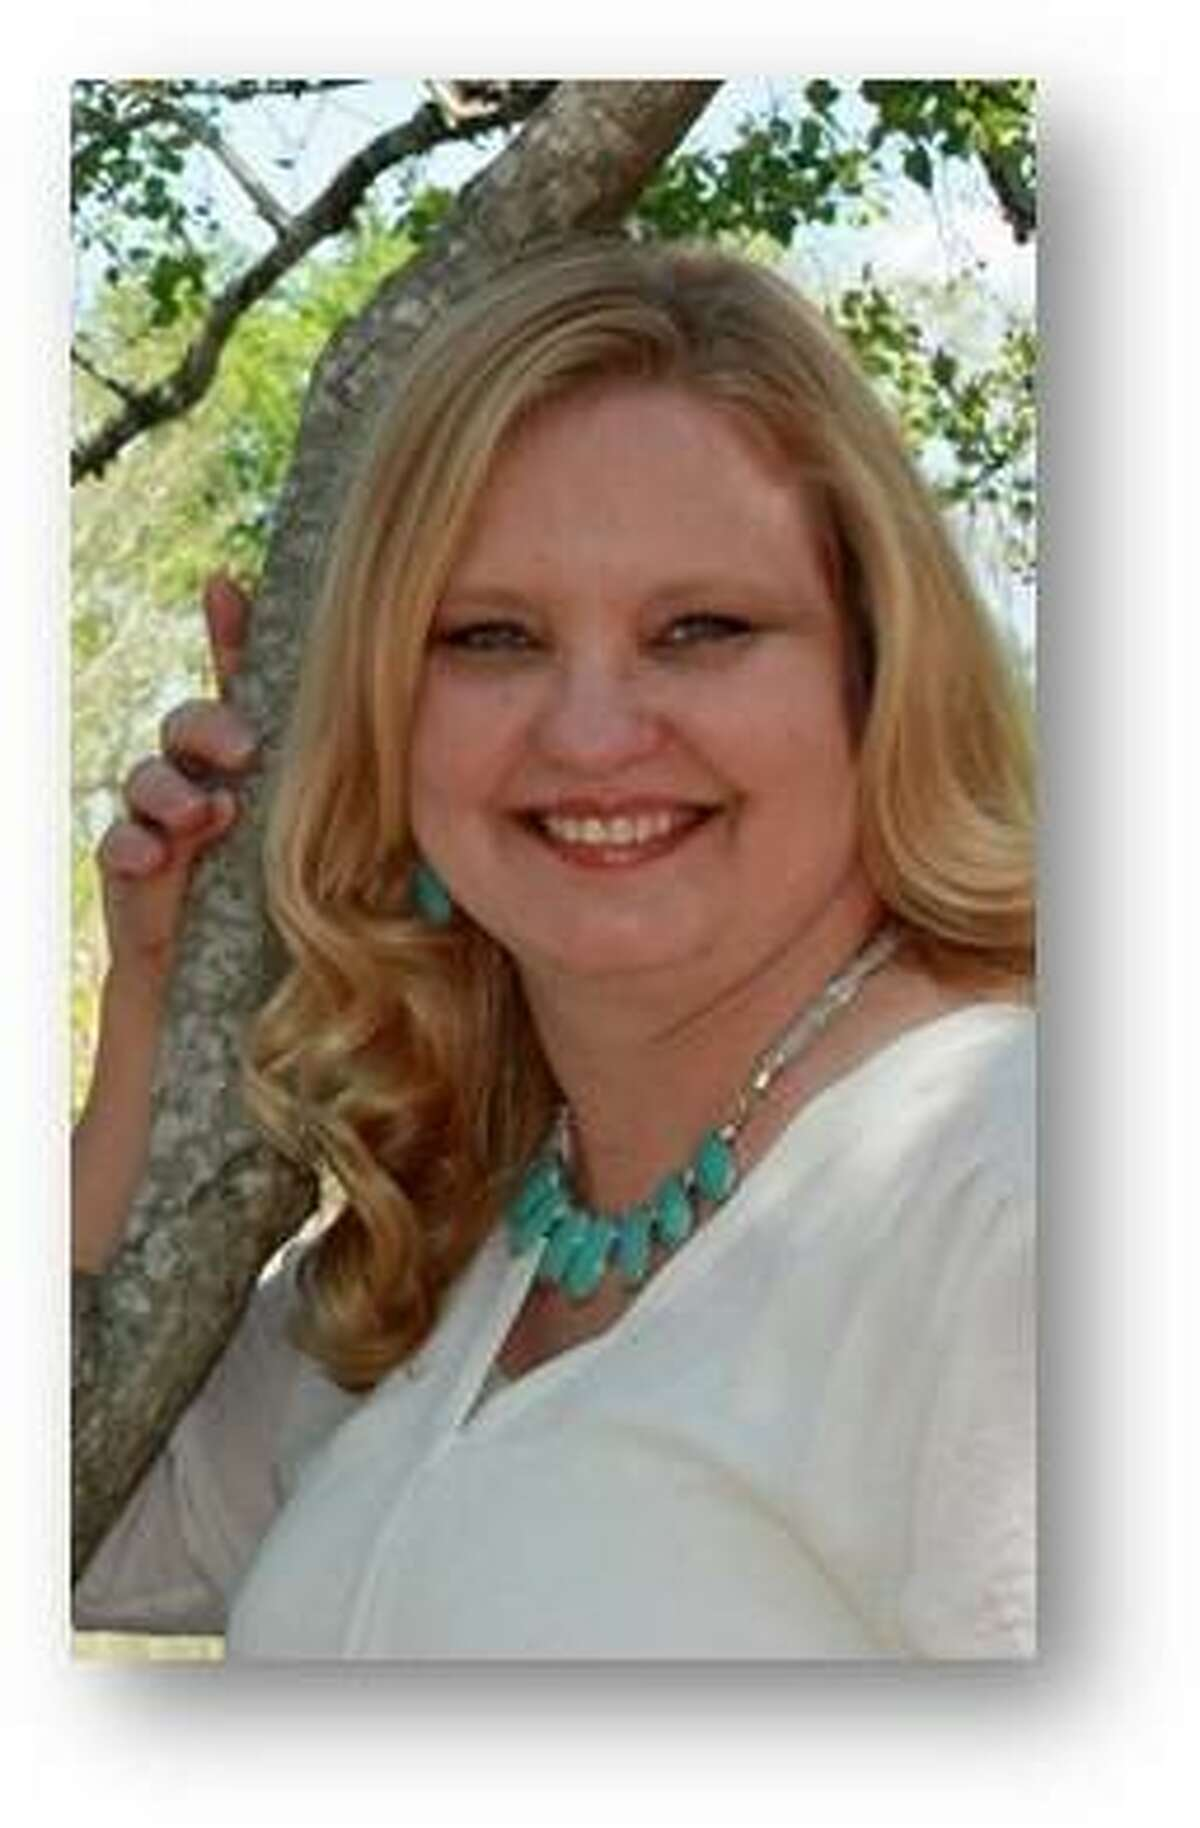 Appointed by the Katy Independent School District Board of Trustees on May 26, Stephanie McElroy is the new principal of Bear Creek Elementary.